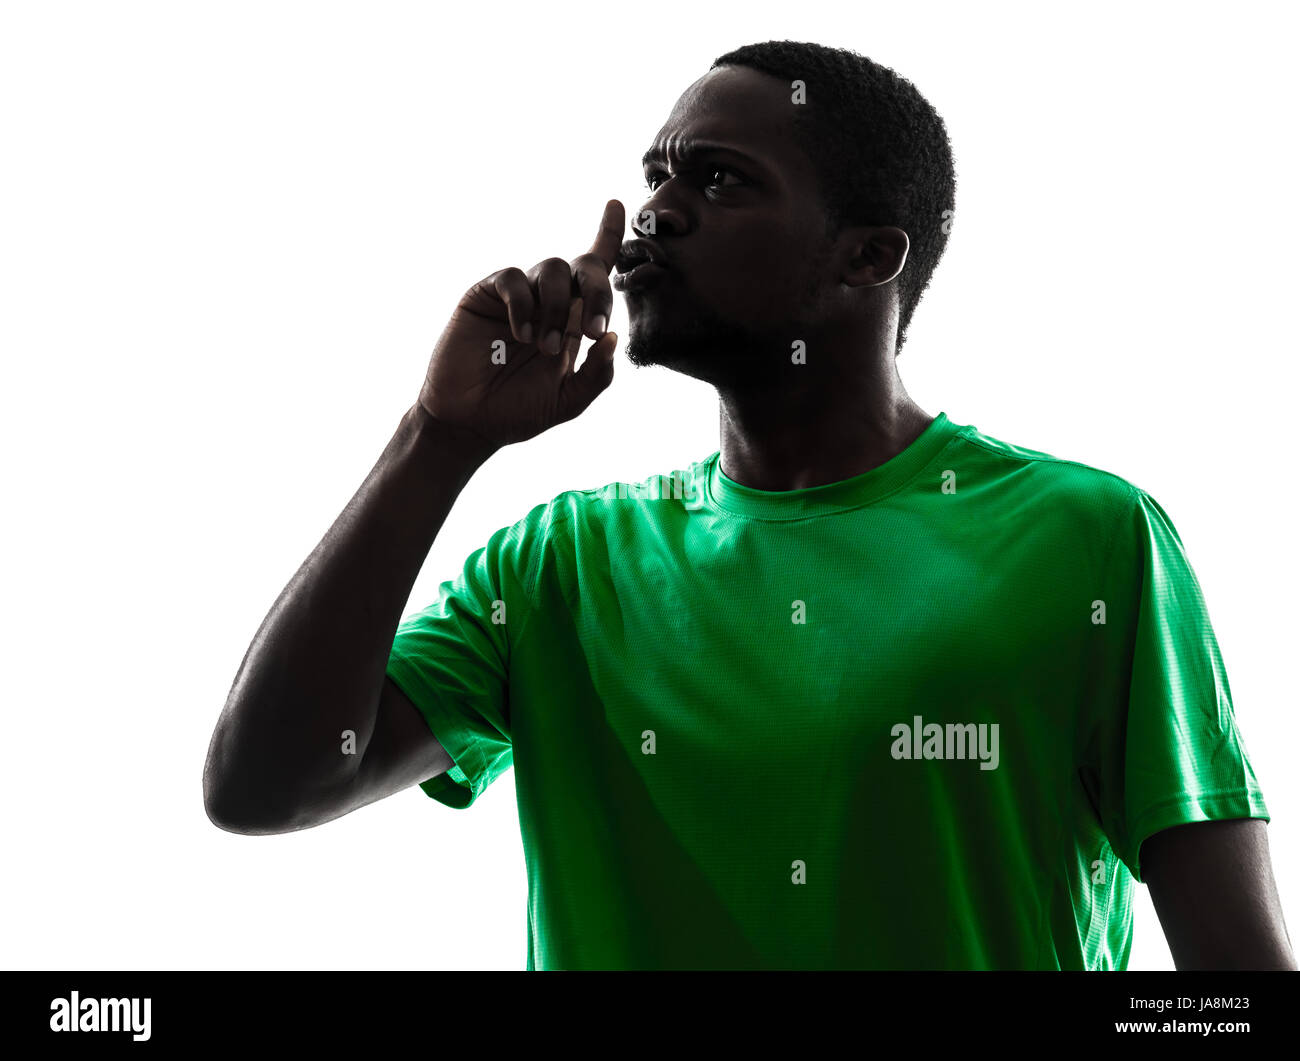 one african man soccer player hushing green jersey in silhouette  on white background - Stock Image